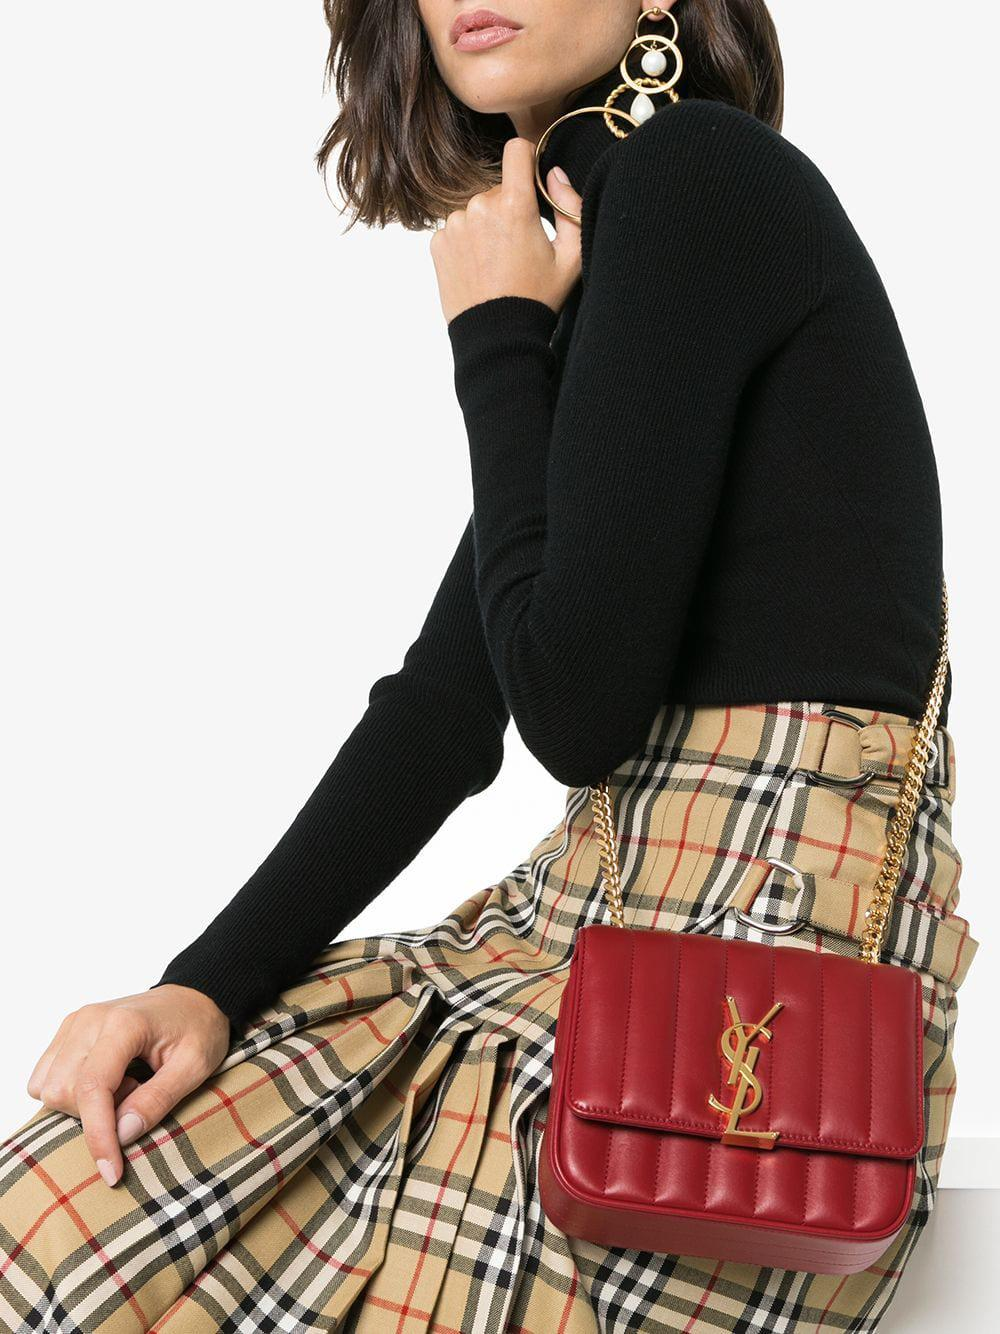 900f9ccfb28b94 Saint Laurent - Red Vicky Small Quilted Leather Bag - Lyst. View fullscreen